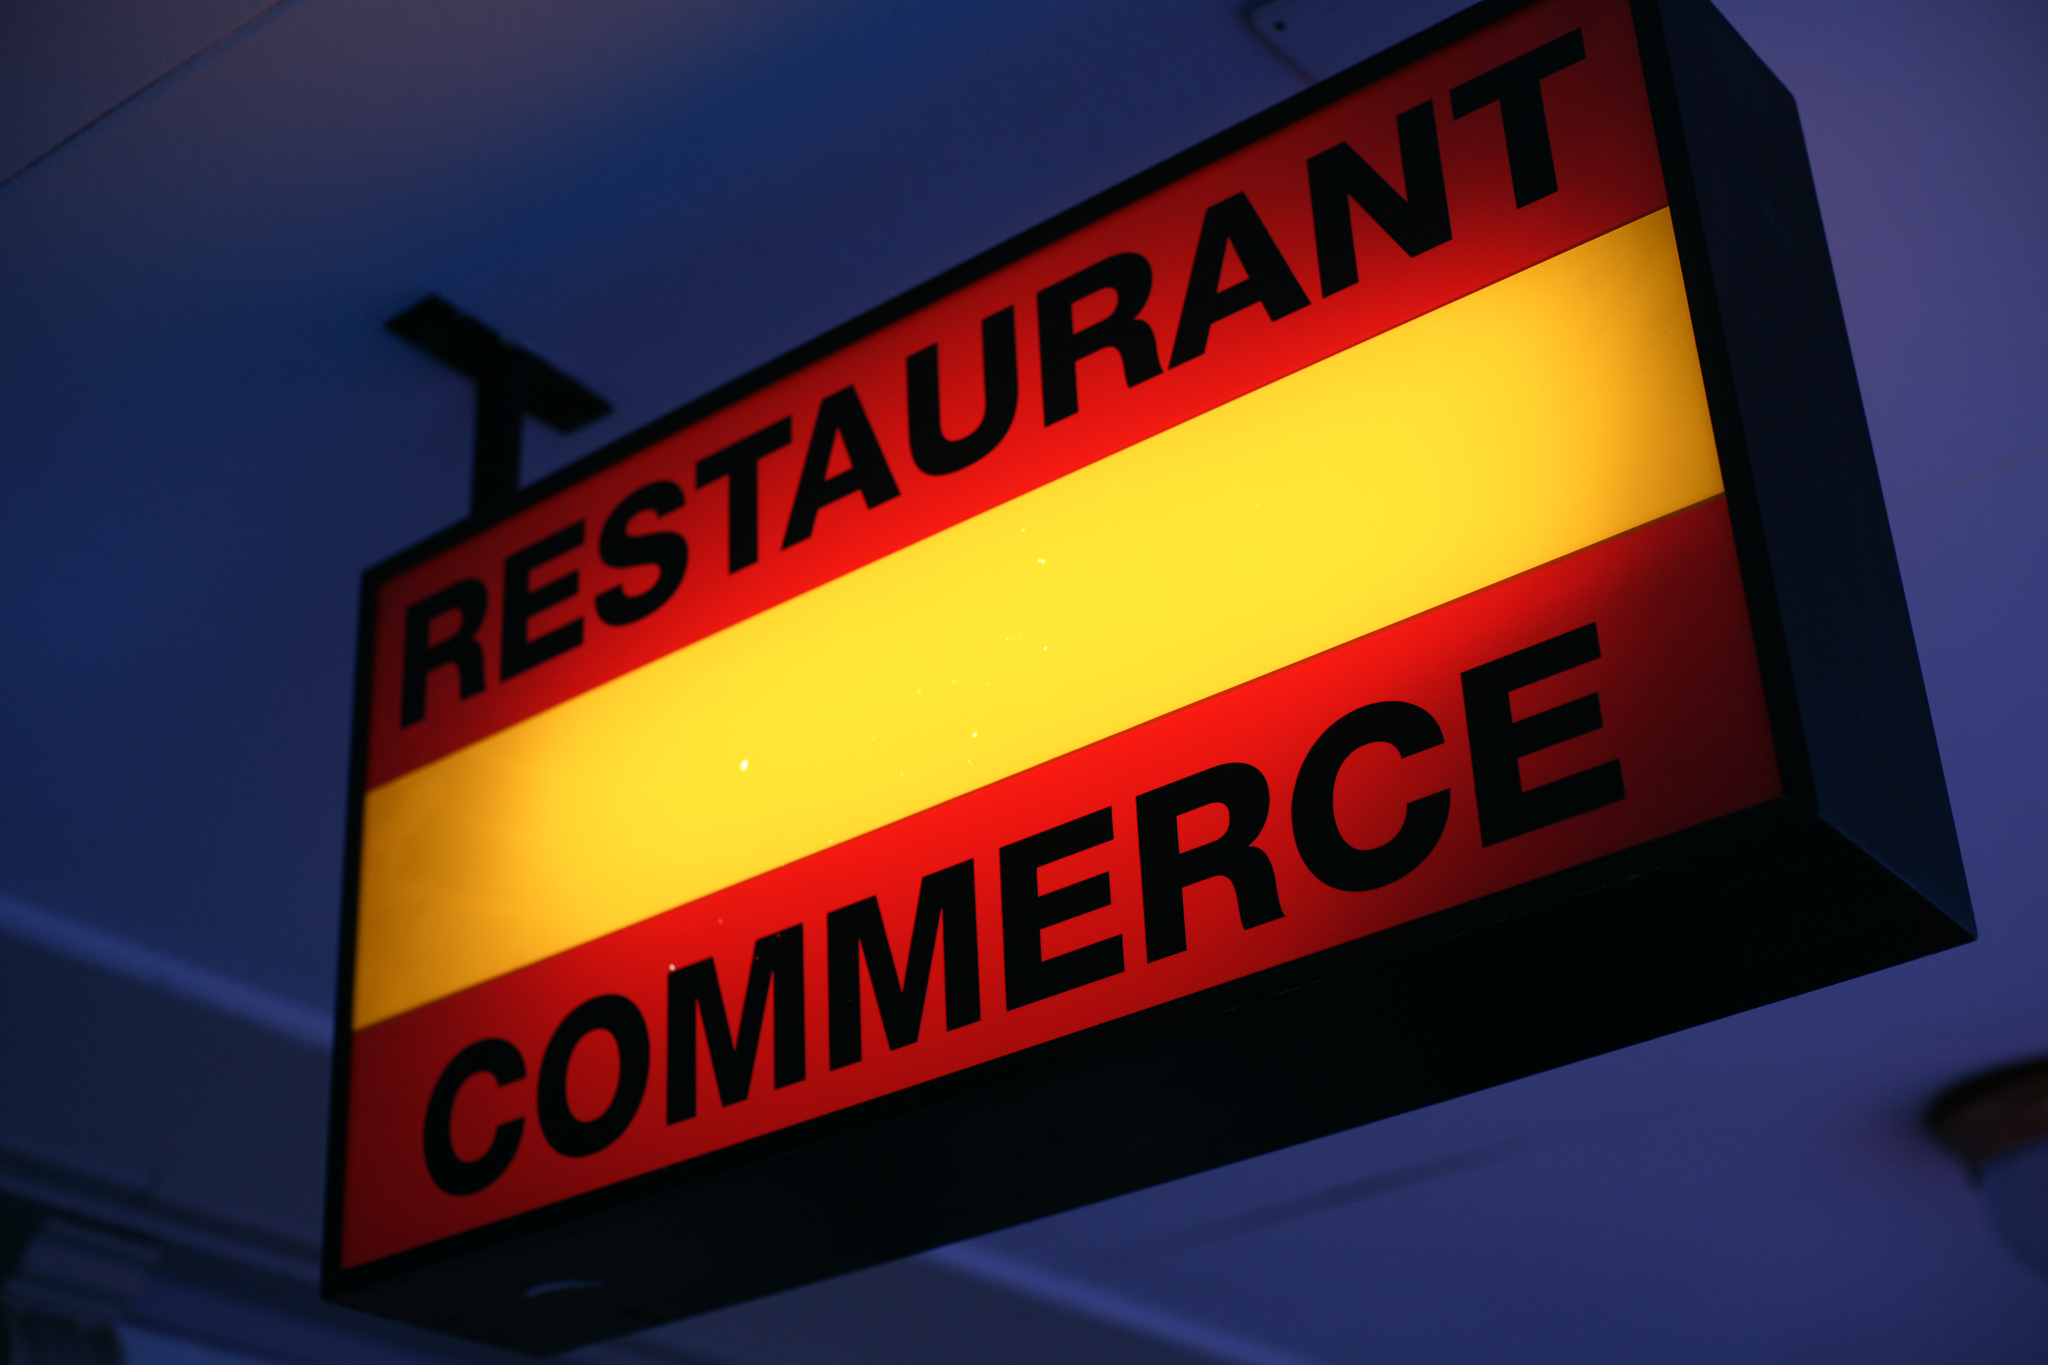 Restaurant Commerce